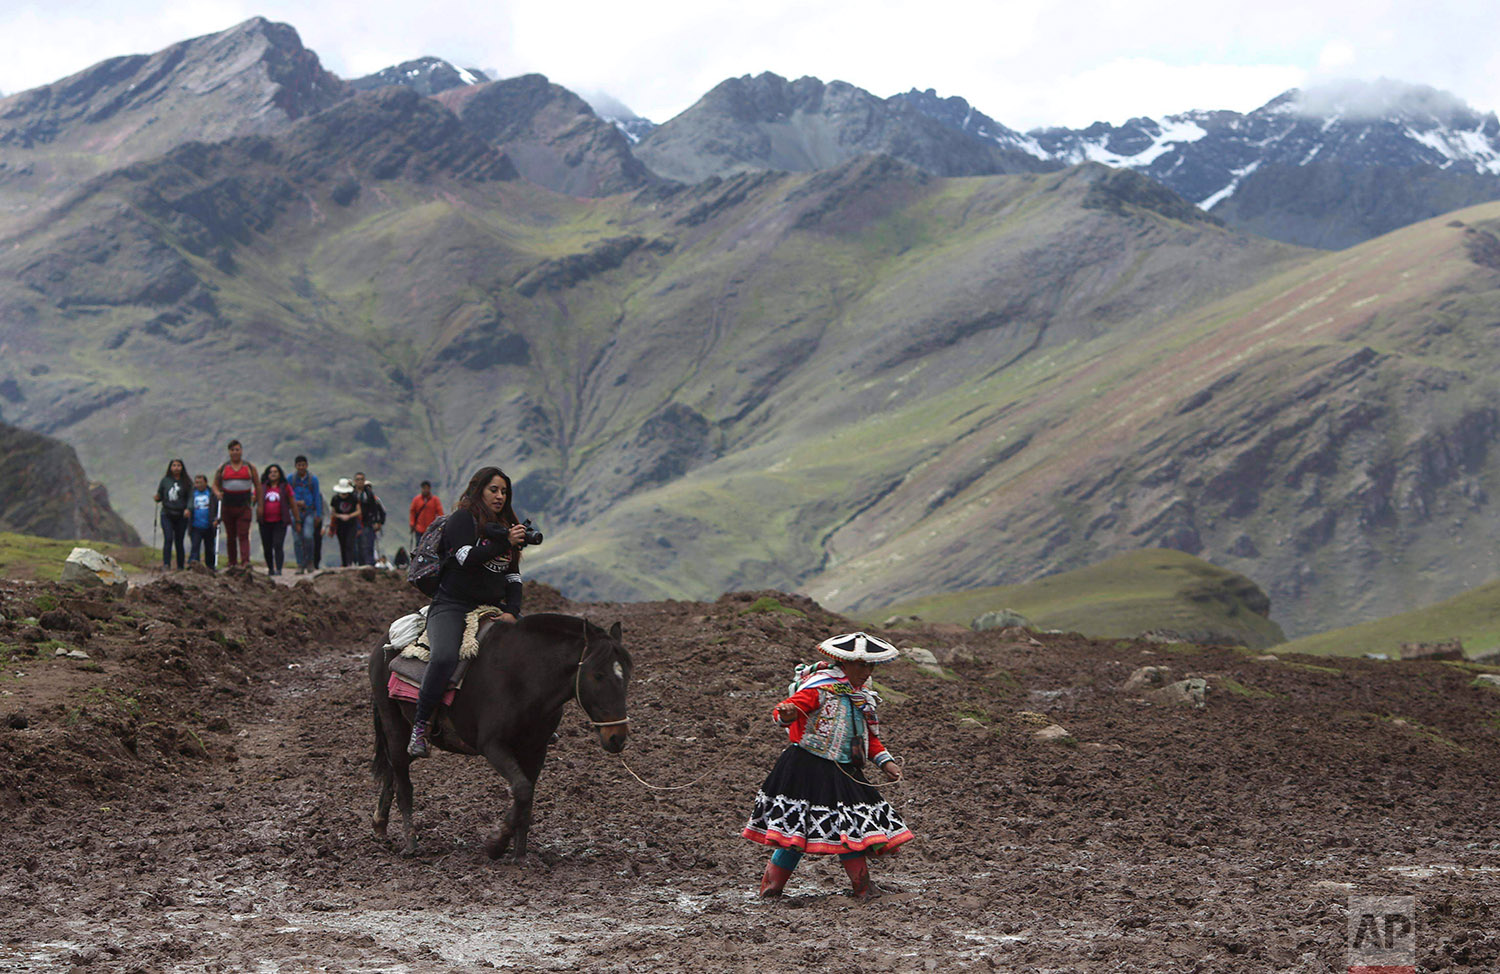 In this March 2, 2018 photo, a group of tourists ride horses led by an Andean guide to Rainbow Mountain, a ridge of multicolored sediments laid down millions of years ago and pushed up as tectonic plates clashed, in Pitumarca, Peru. (AP Photo/Martin Mejia)